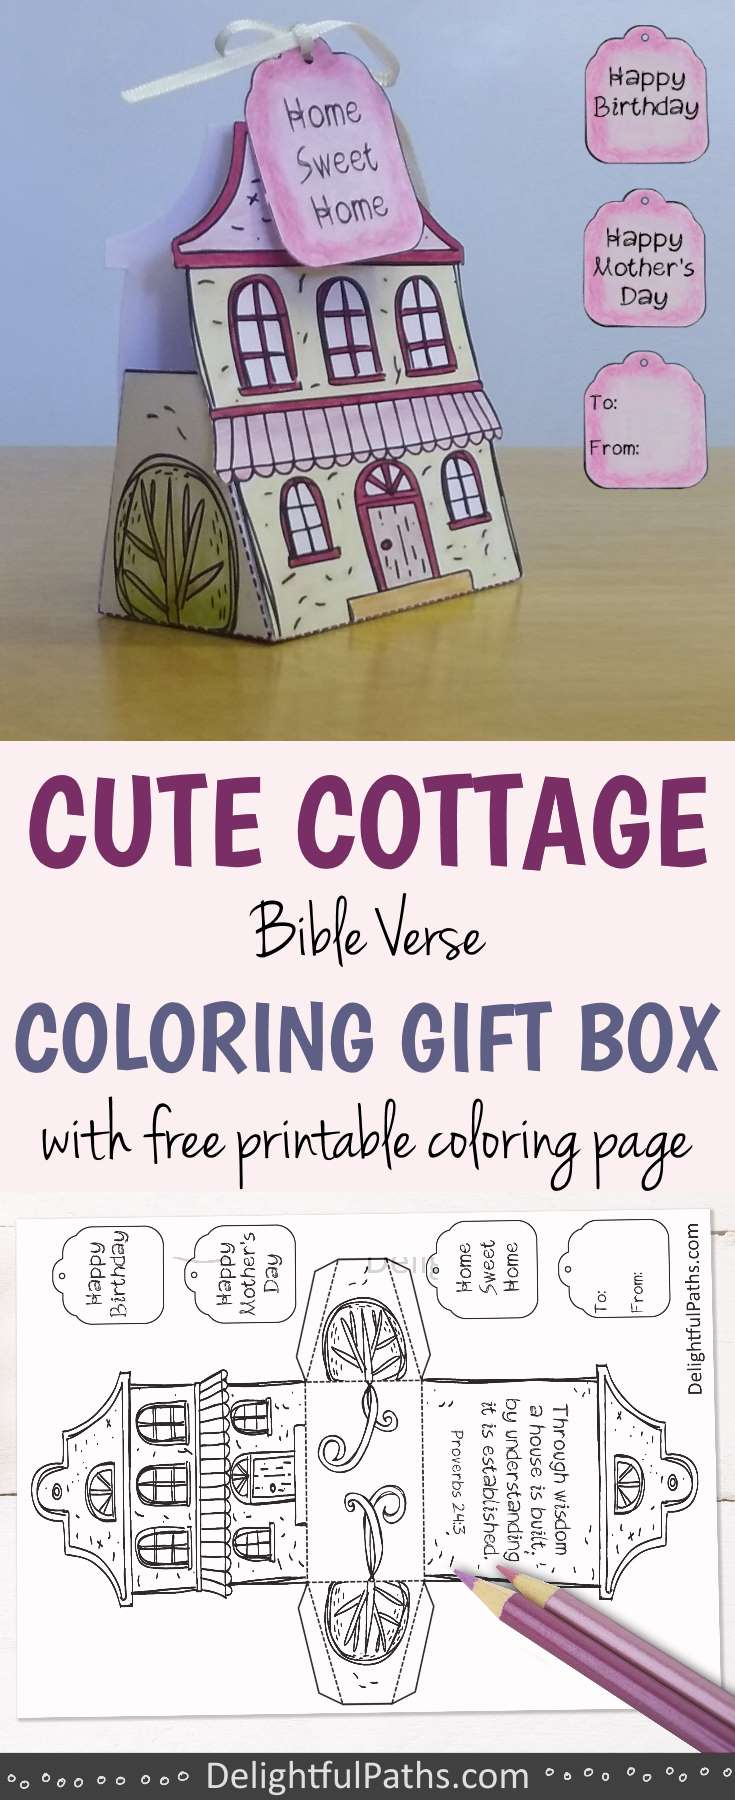 cute cottage coloring gift box with Bible verse and free coloring page DelightfulPaths